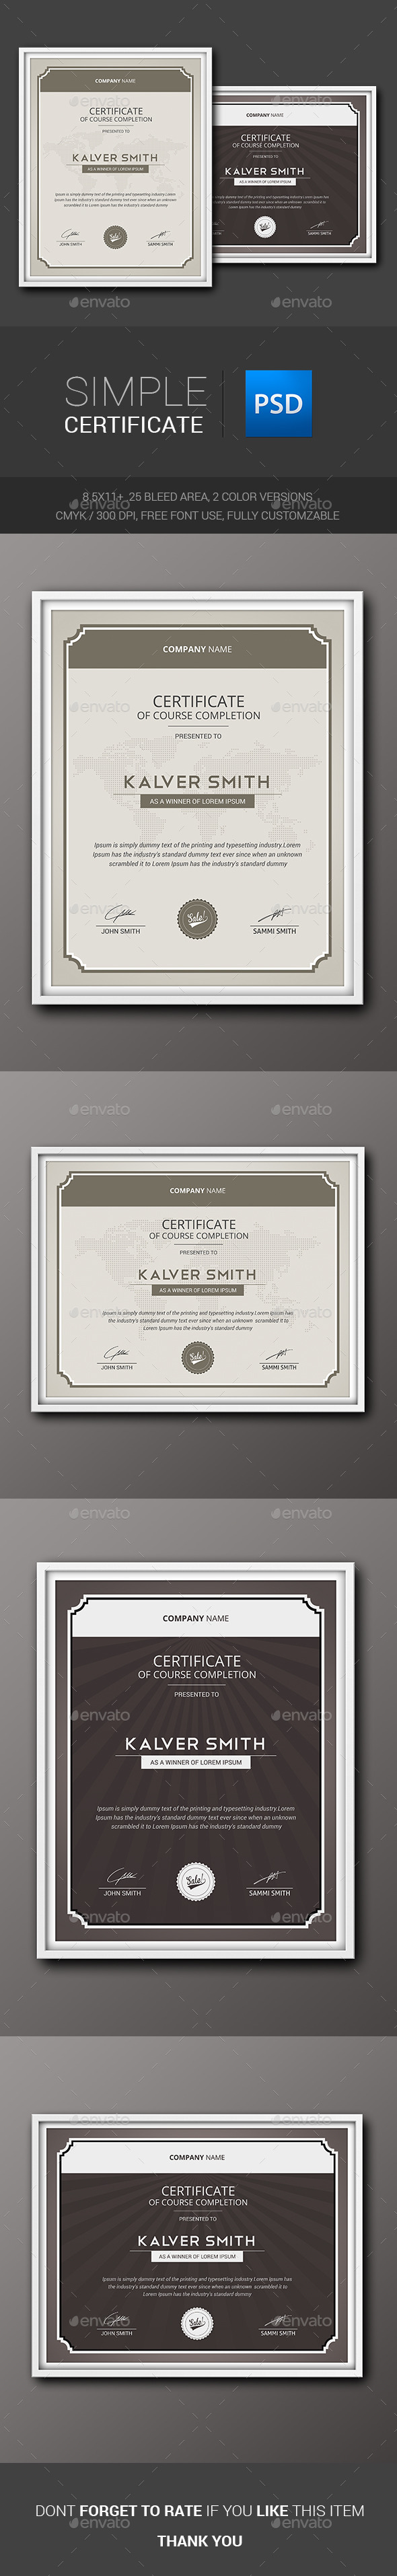 GraphicRiver Simple Certificate 11340950